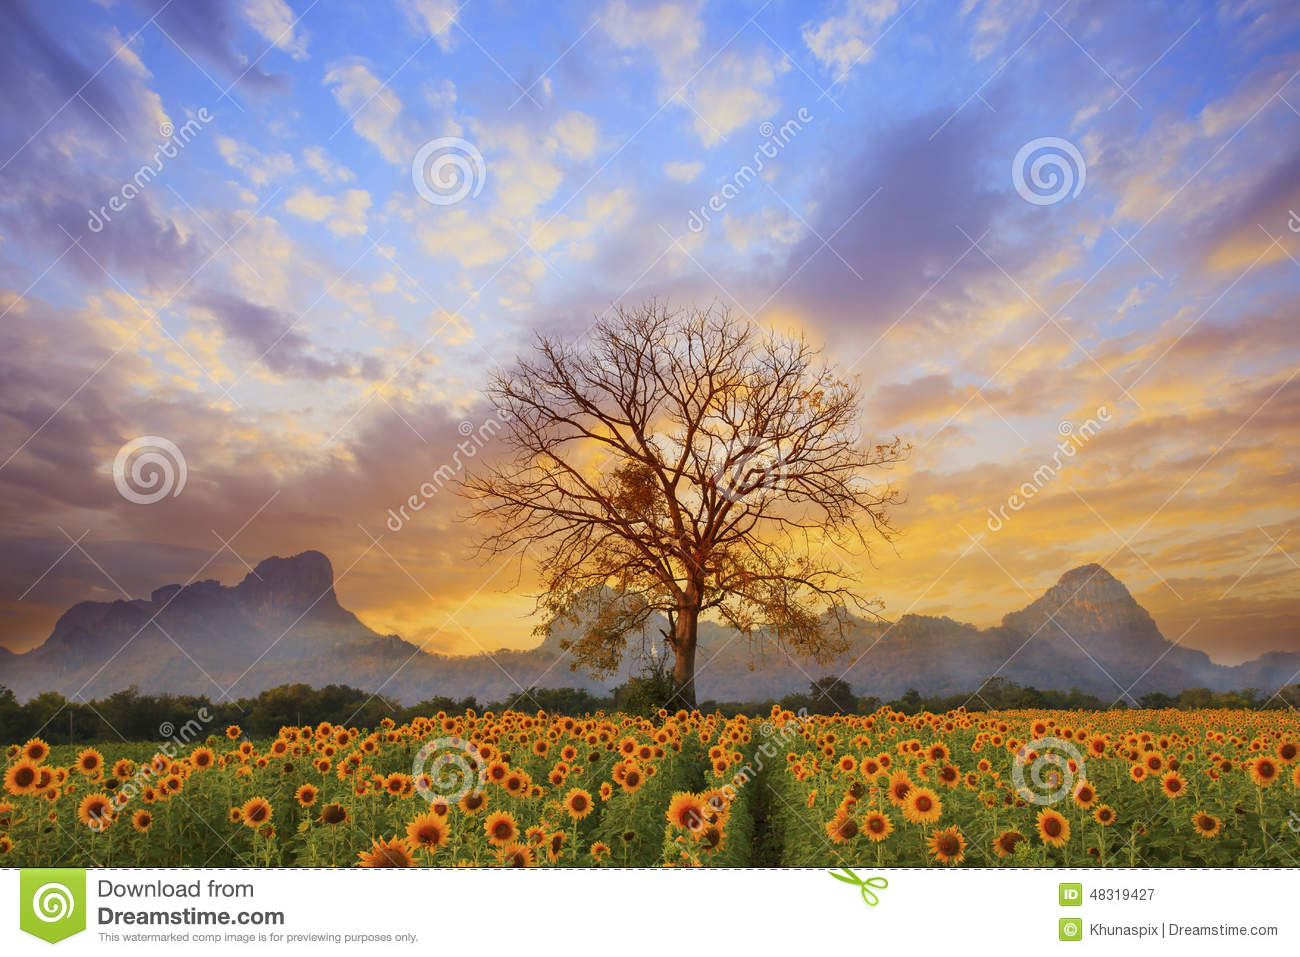 Stock Photo Beautiful Landscape Dry Tree Branch Sun Flowers Field Against Colorful Evening Dusky Sky Use As Natural Background Backdrop Image48319427 on magnolia texas scenery